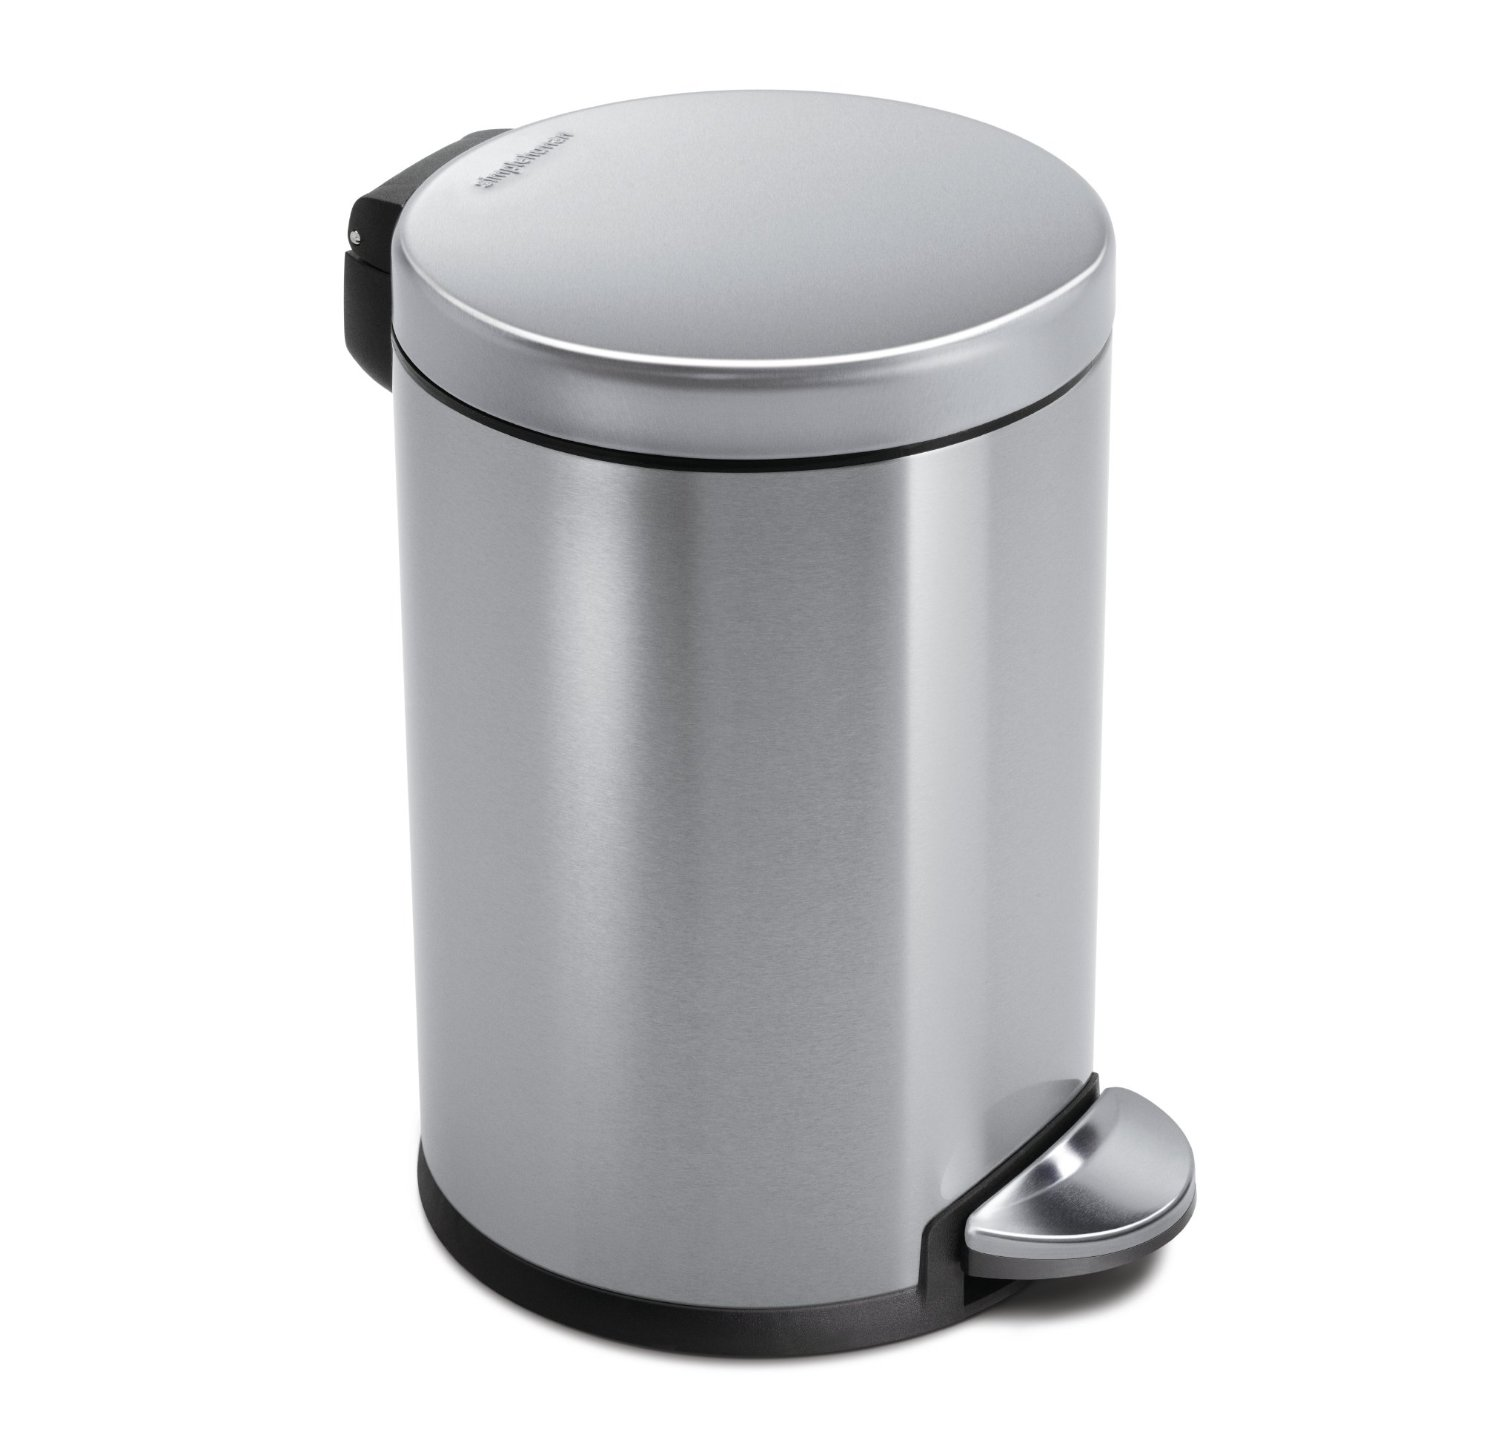 Best Bathroom Trash Can Reviews of 2018 at TopProducts.com